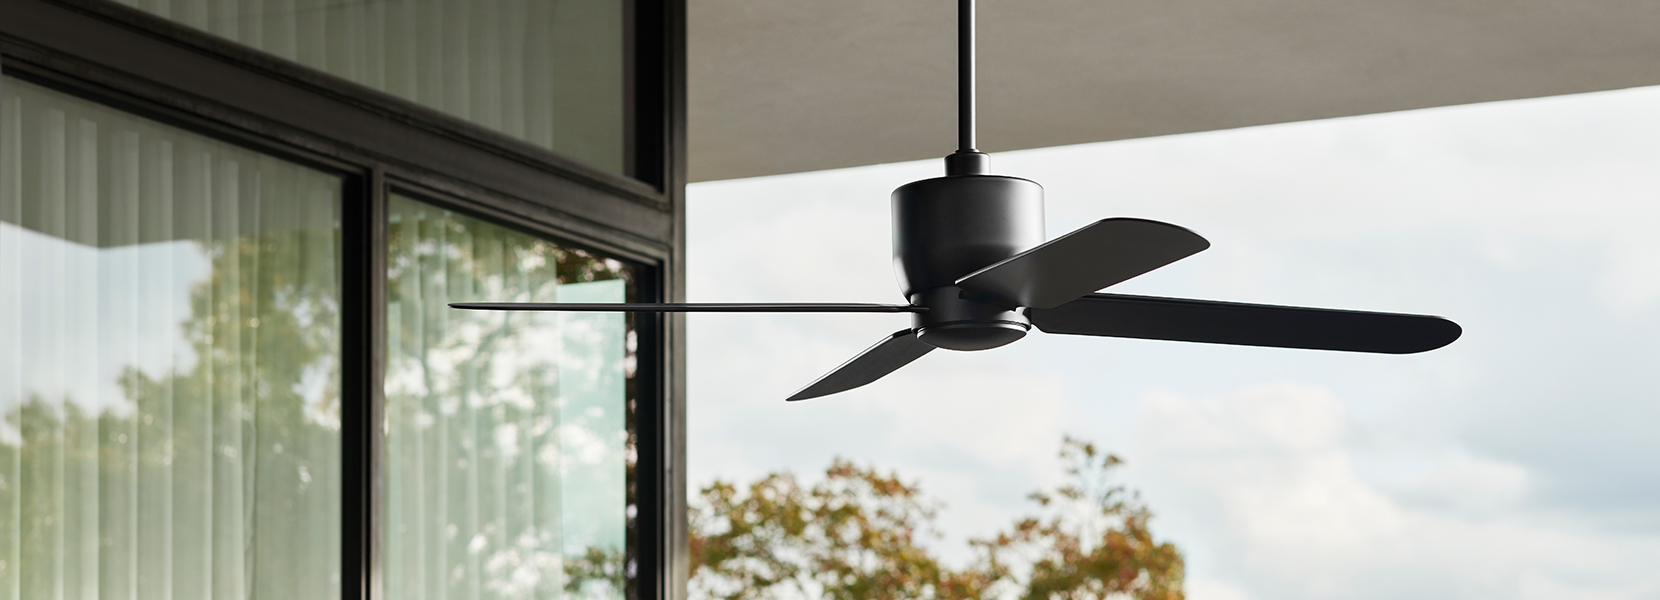 Stori Modern Outdoor Epilogue Ceiling Fan Collection